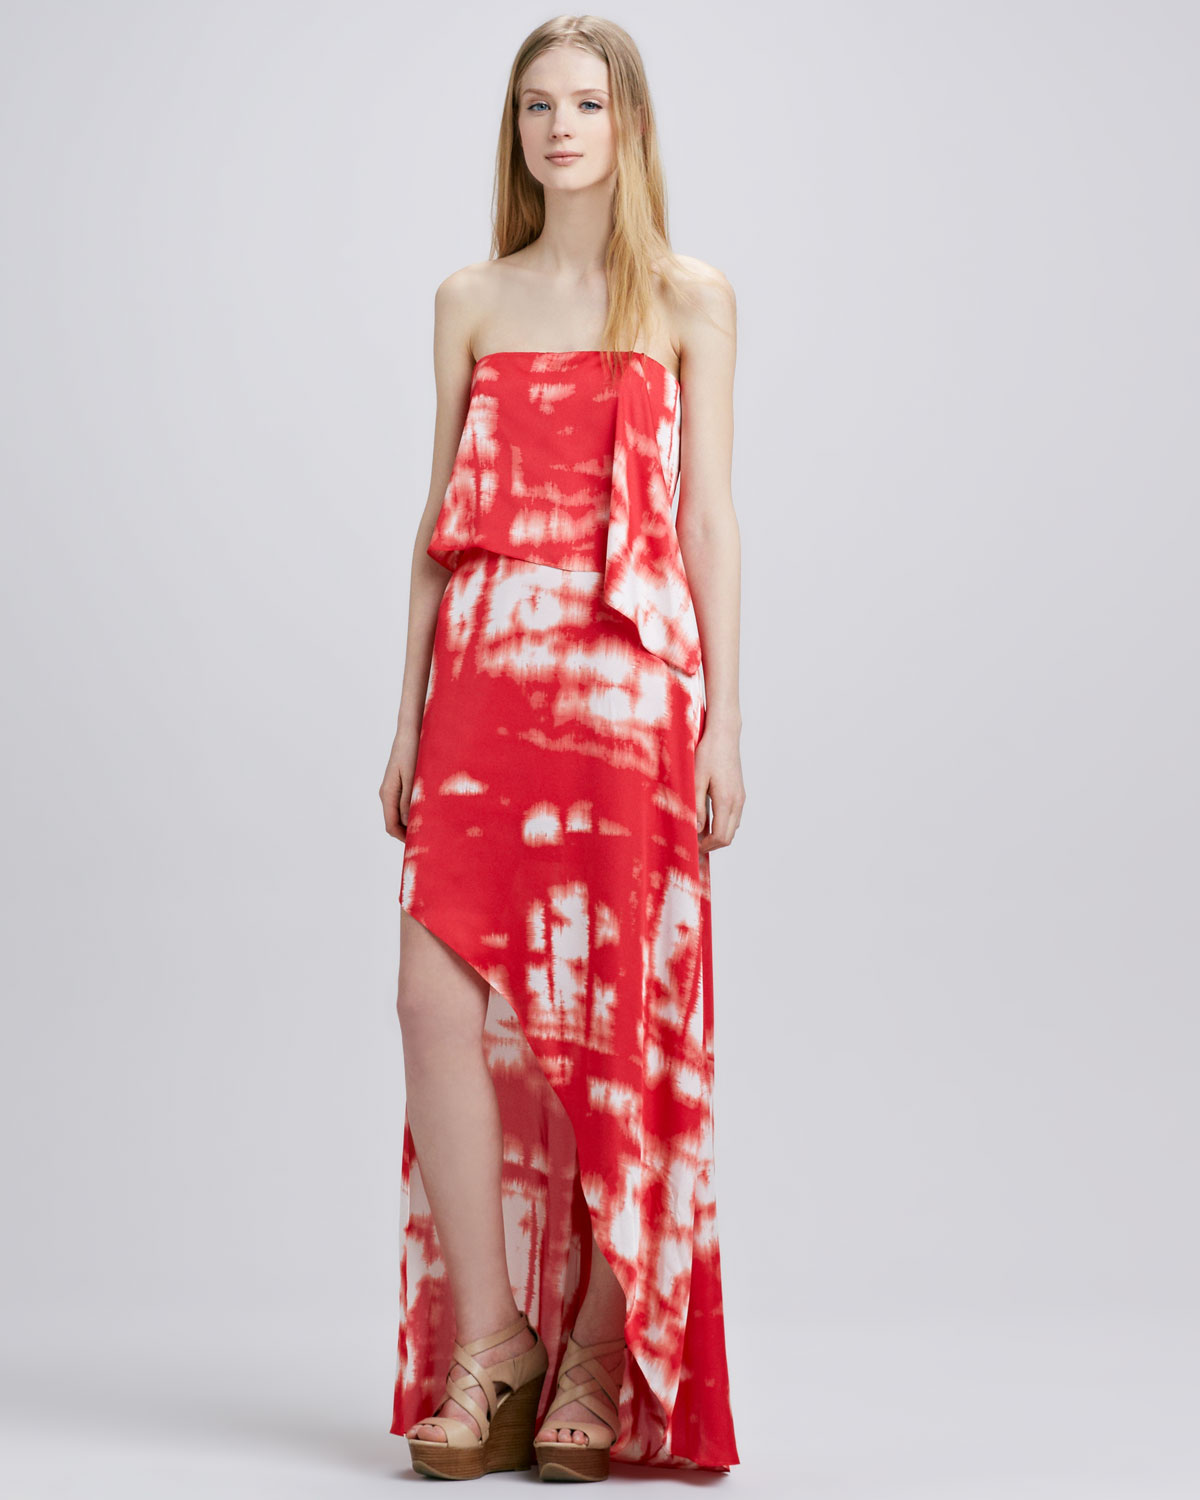 Herve Leger Red Strapless BCBG Tie Dye Maxi Dress ...